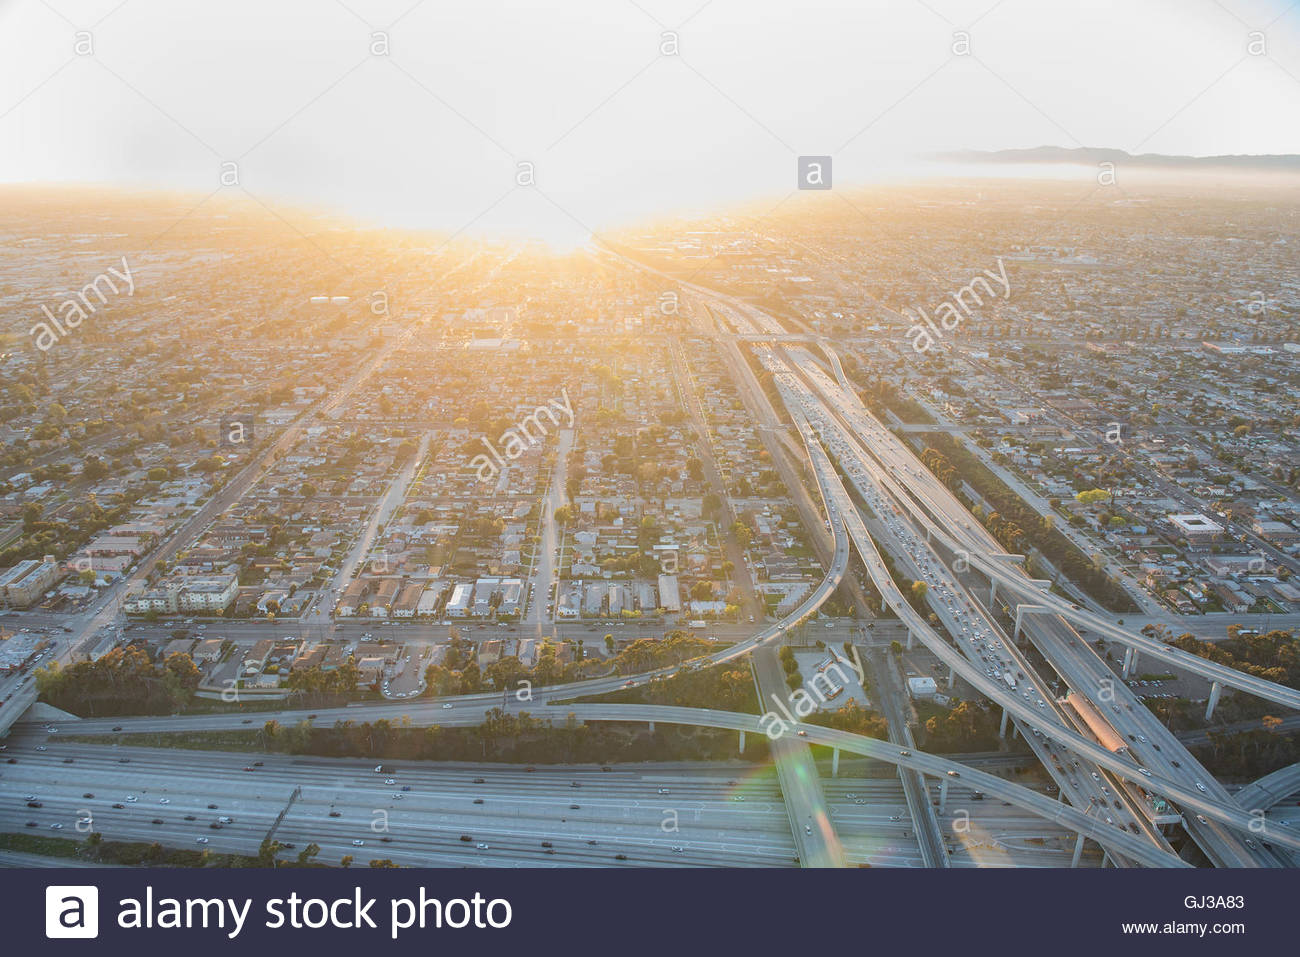 Sunlit aerial view of traffic on highway and flyover, Los Angeles, California, USA - Stock Image